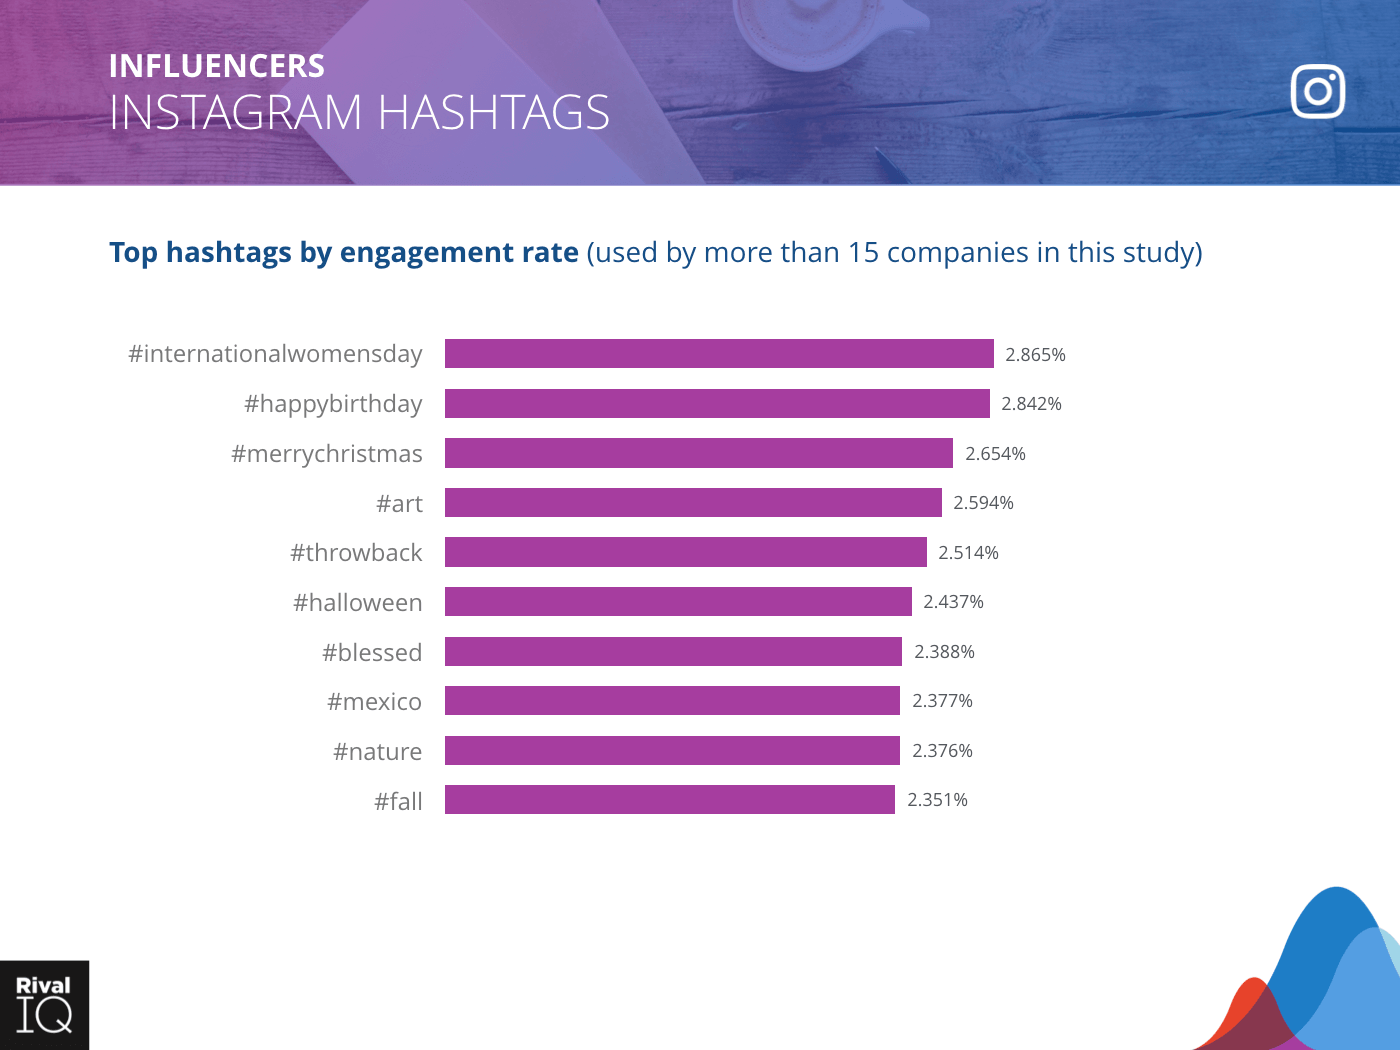 Influencers Industry: bar graph, top hashtags by engagement rate on Instagram